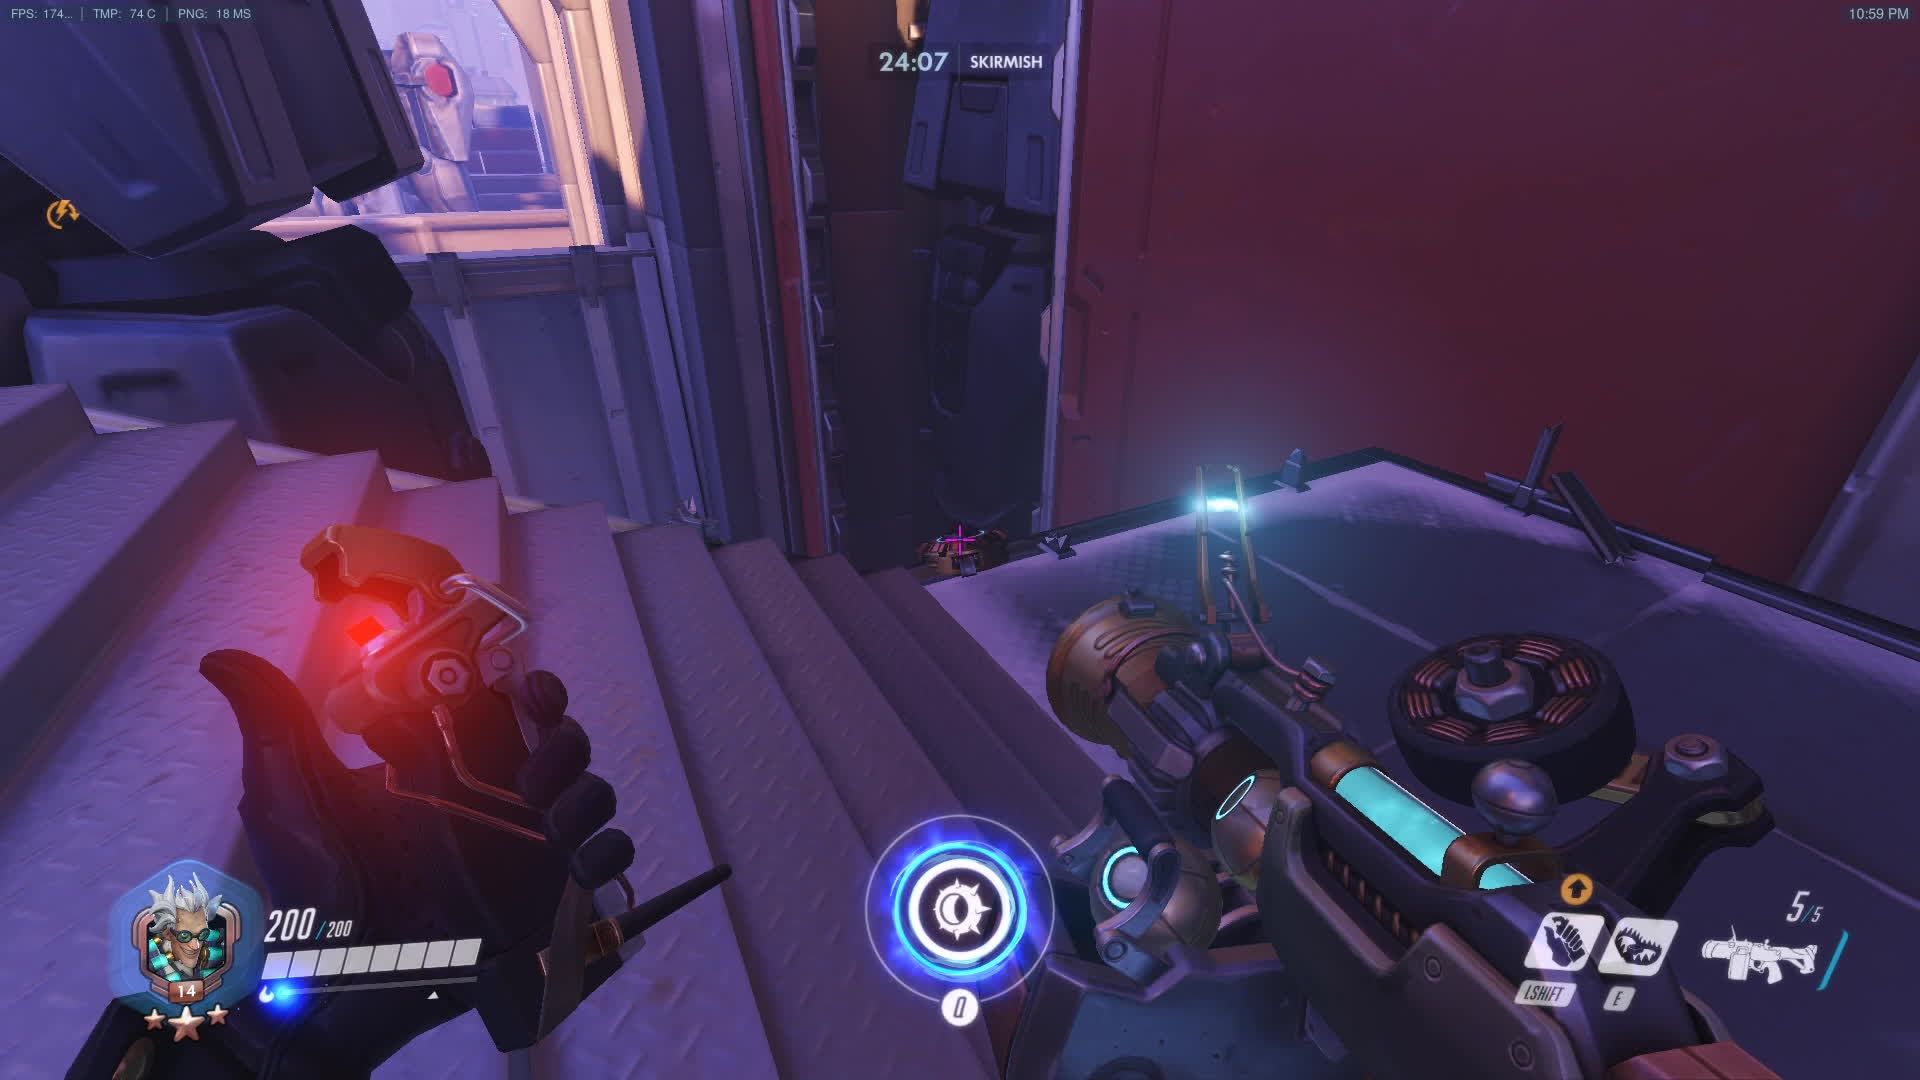 overwatch, Rats GIFs